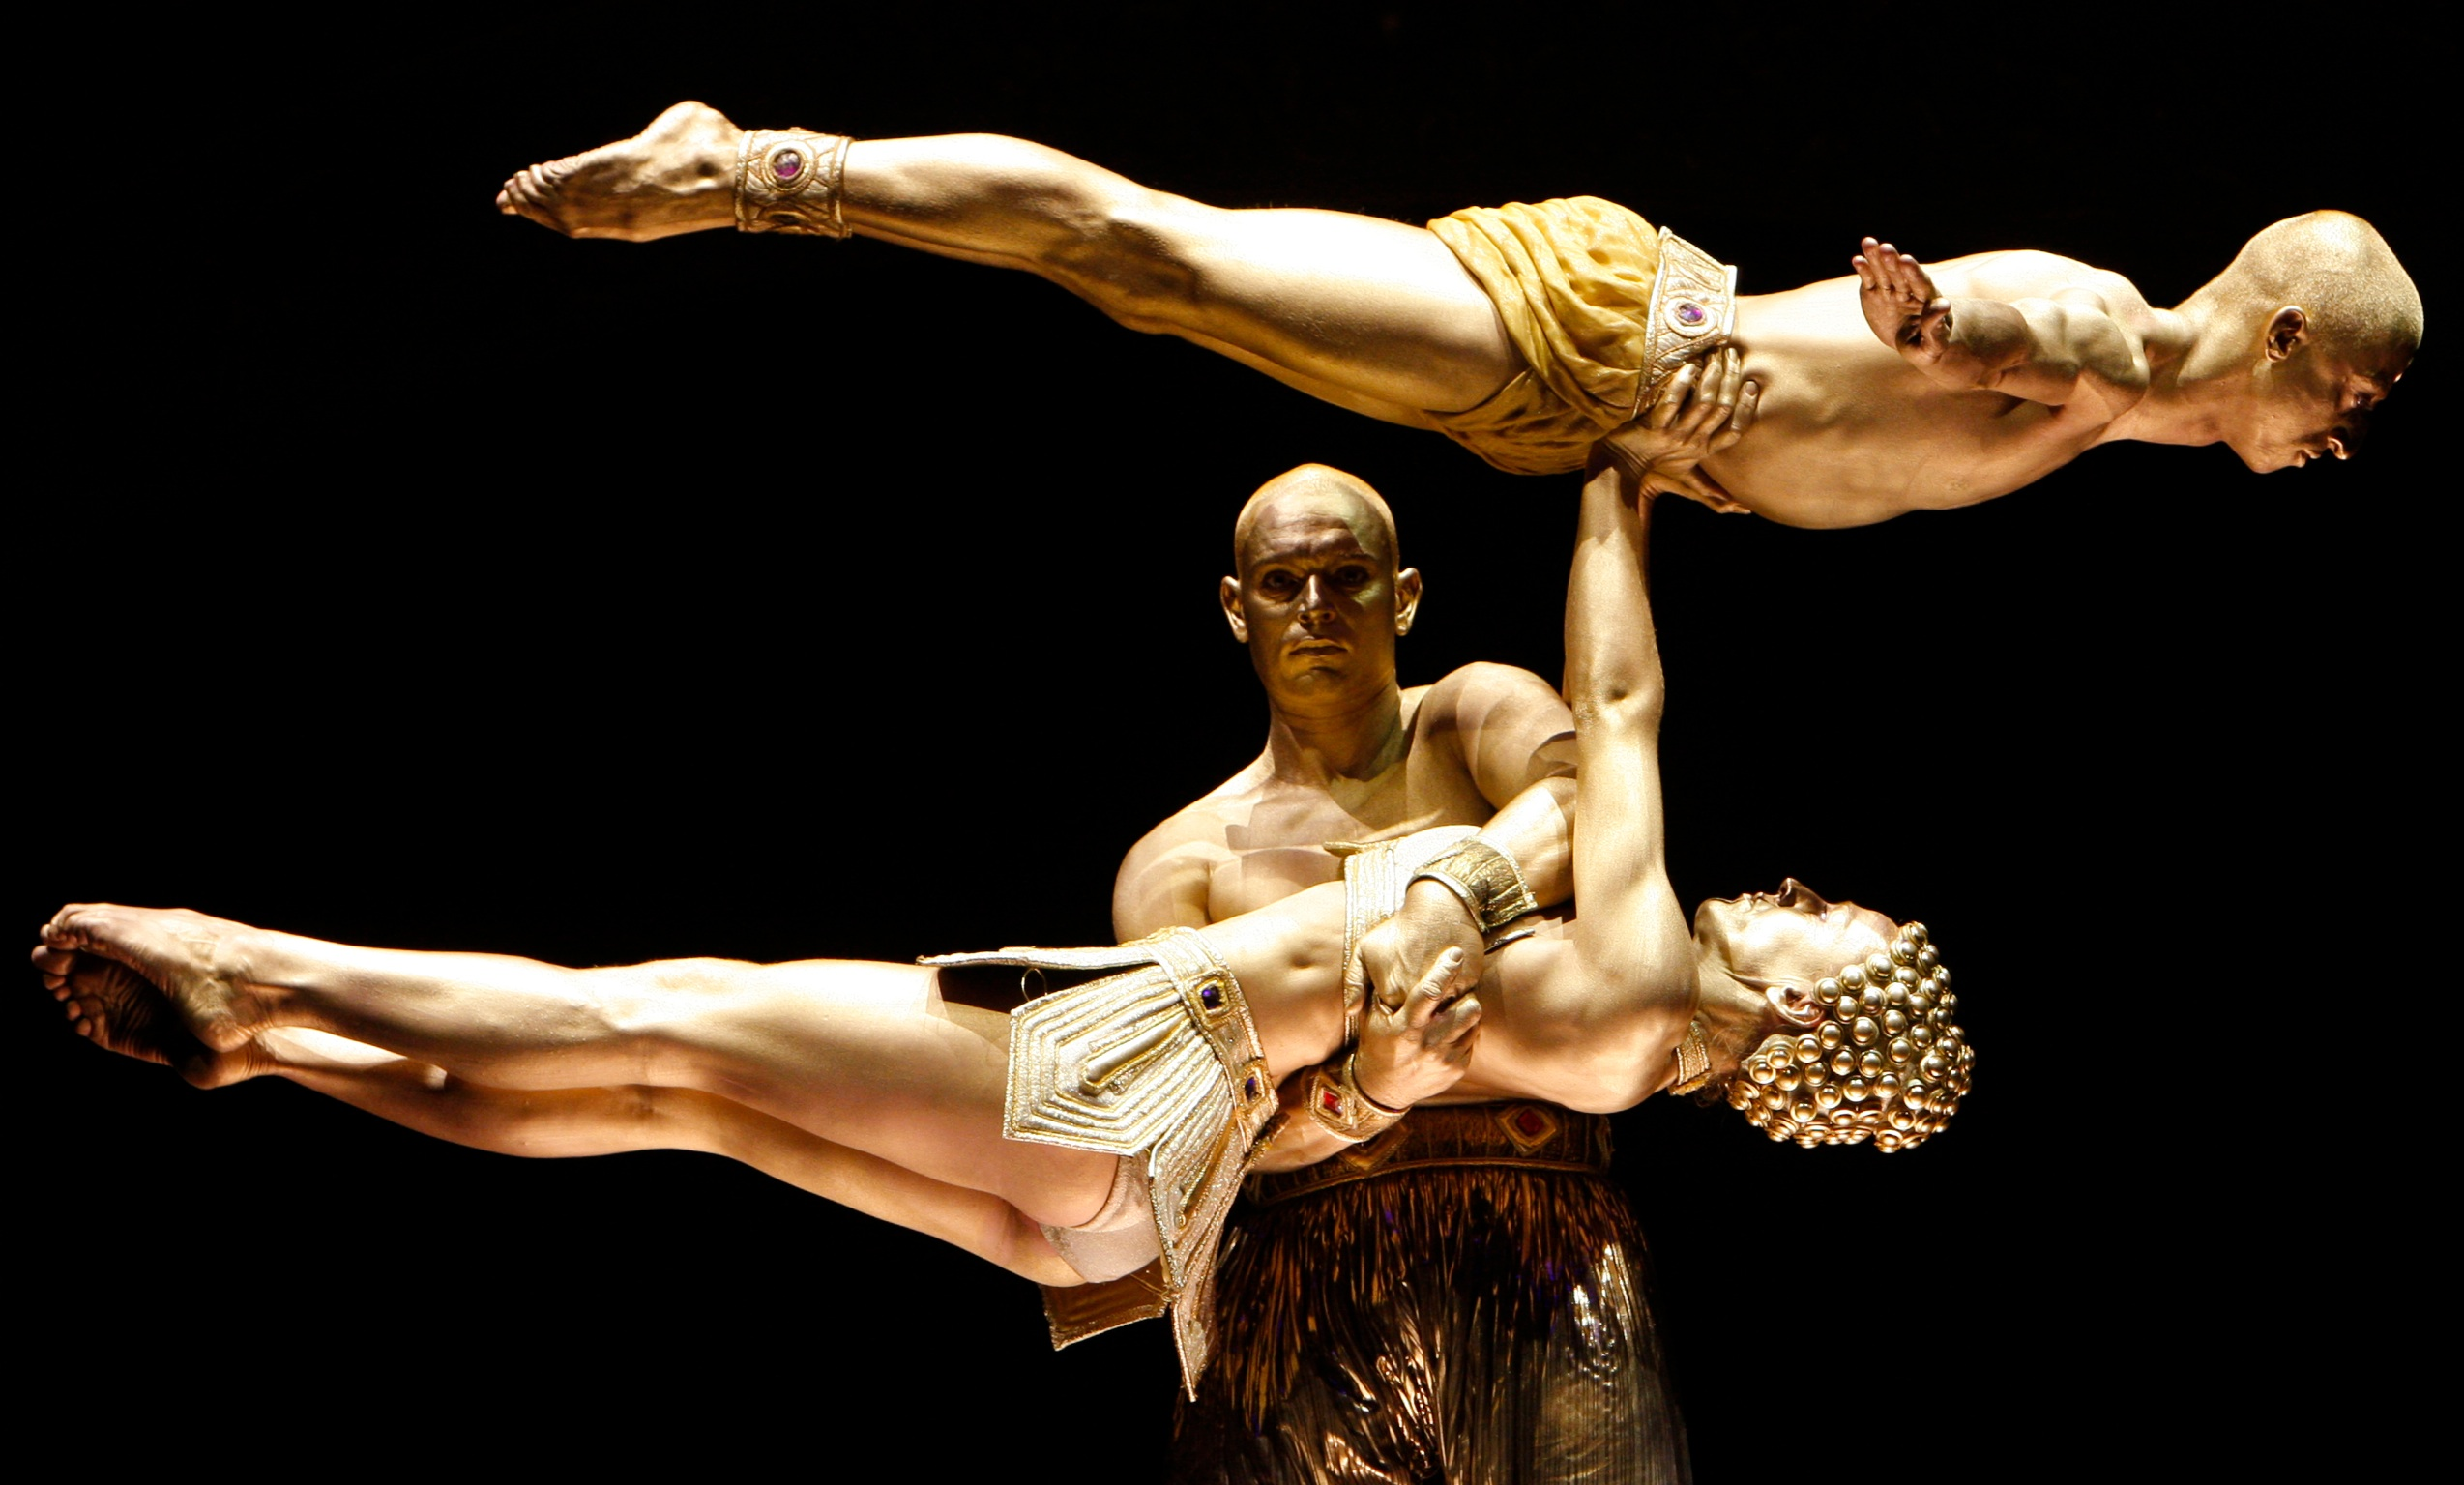 Golden statues act at Big Apple Circus